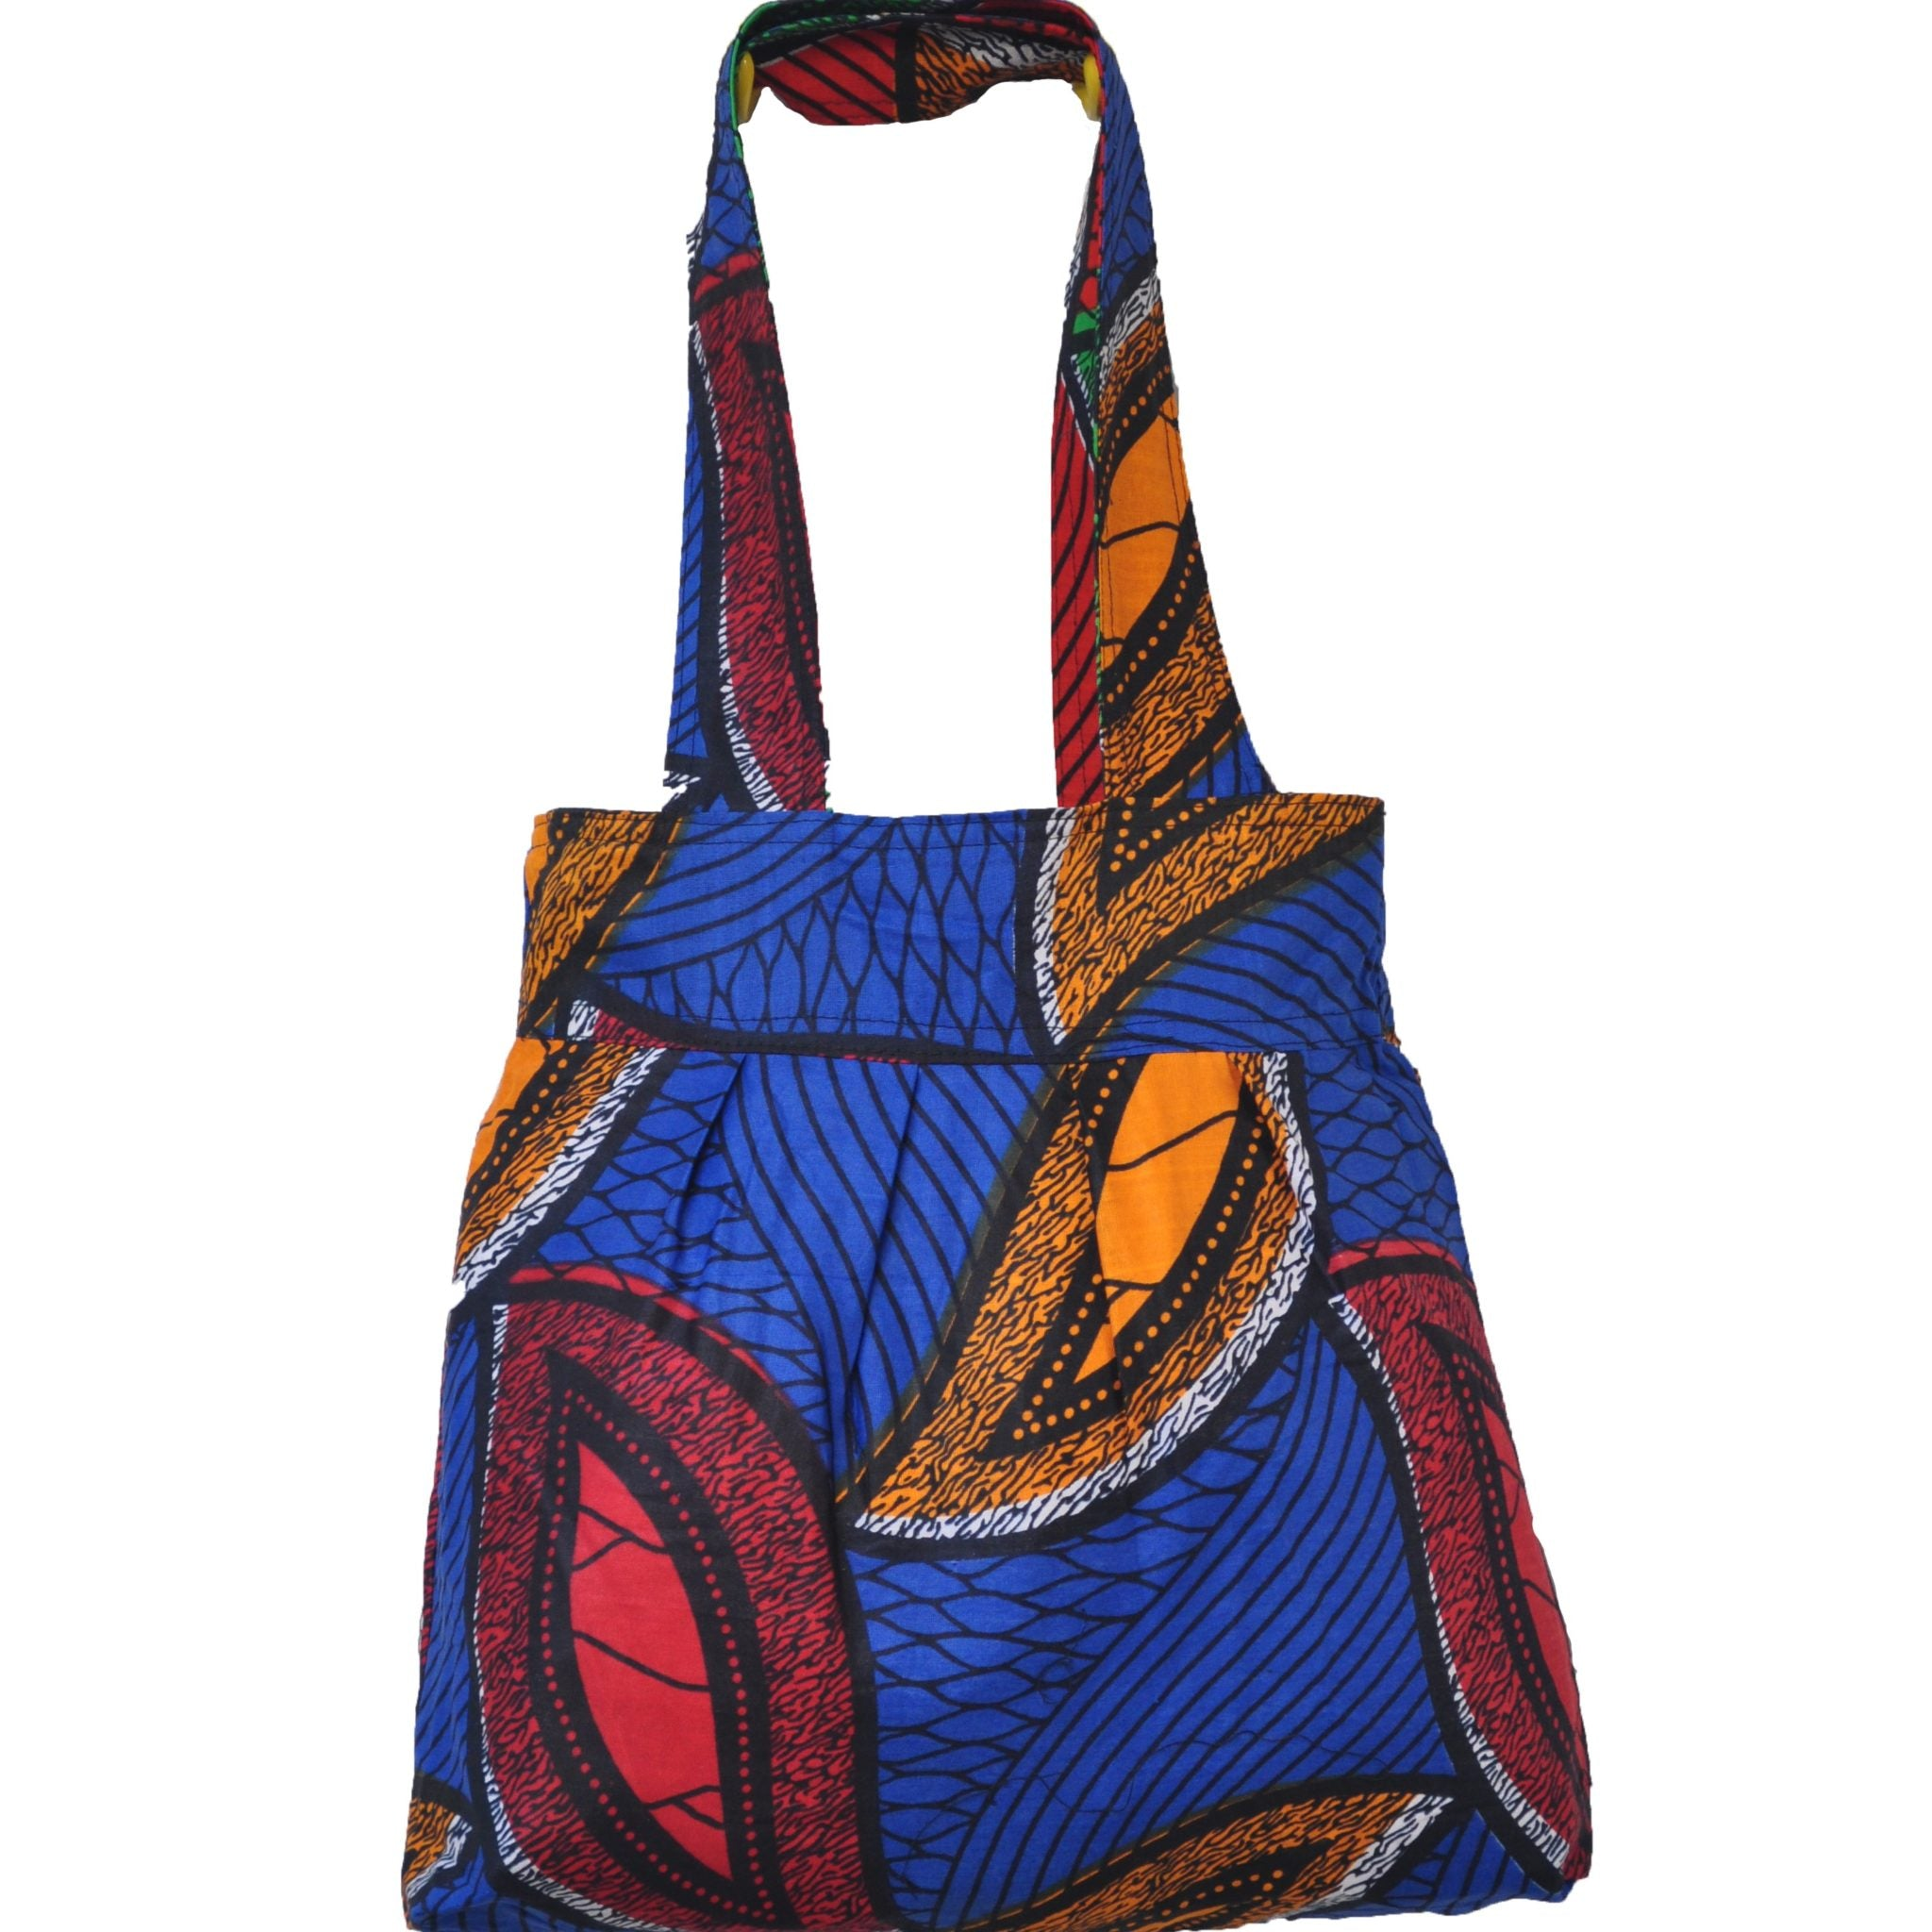 Handmade Reversible Tote Bag - Leaf Print